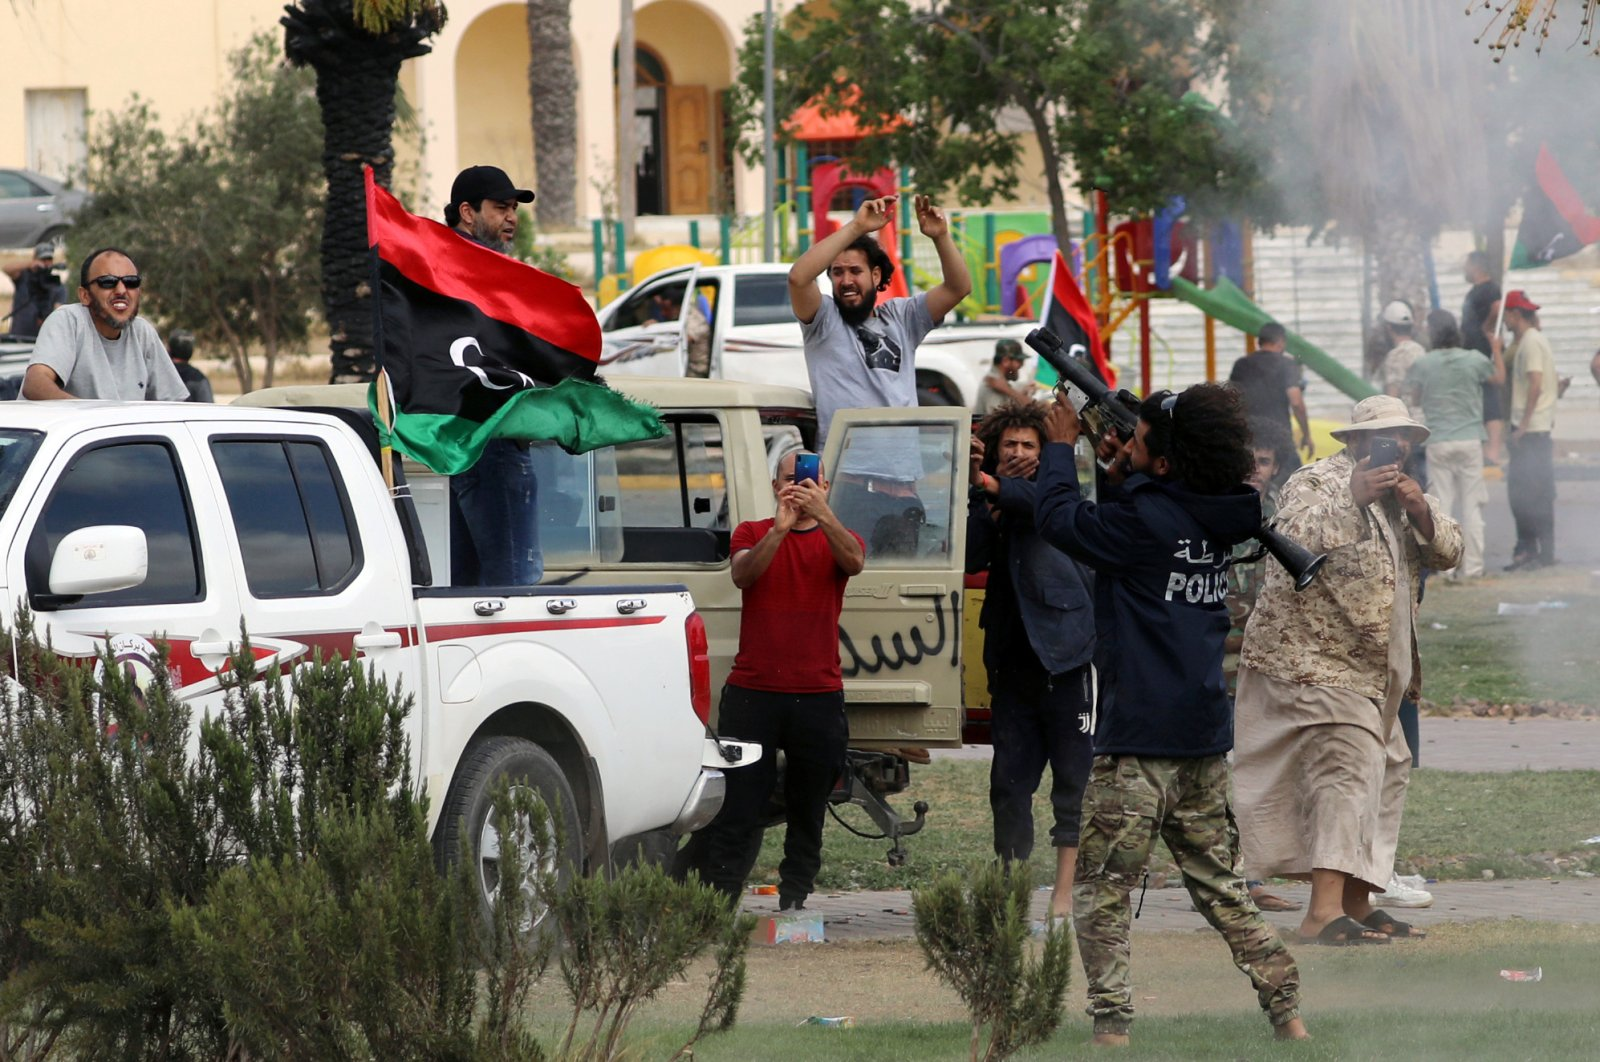 Fighters loyal to Libya's internationally recognized government celebrate after regaining control over Tarhuna city from putschist Gen. Khalifa Haftar forces, Libya, June 5, 2020. (Reuters Photo)